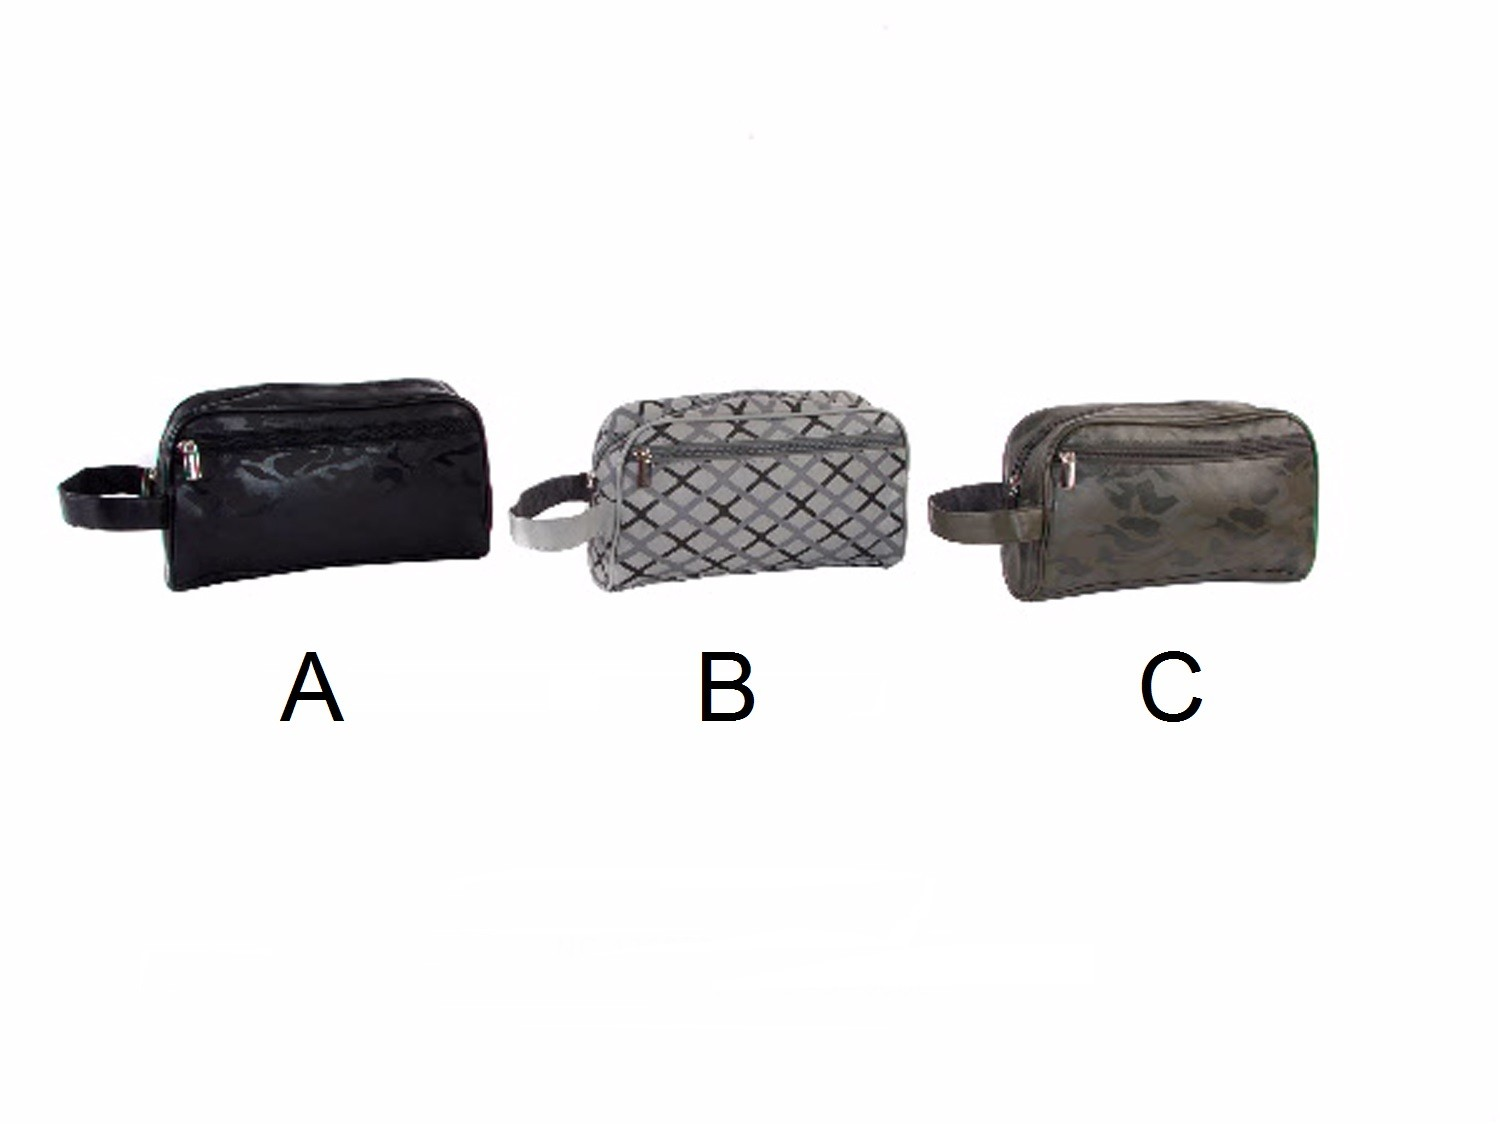 Bag with handle - 3 Models